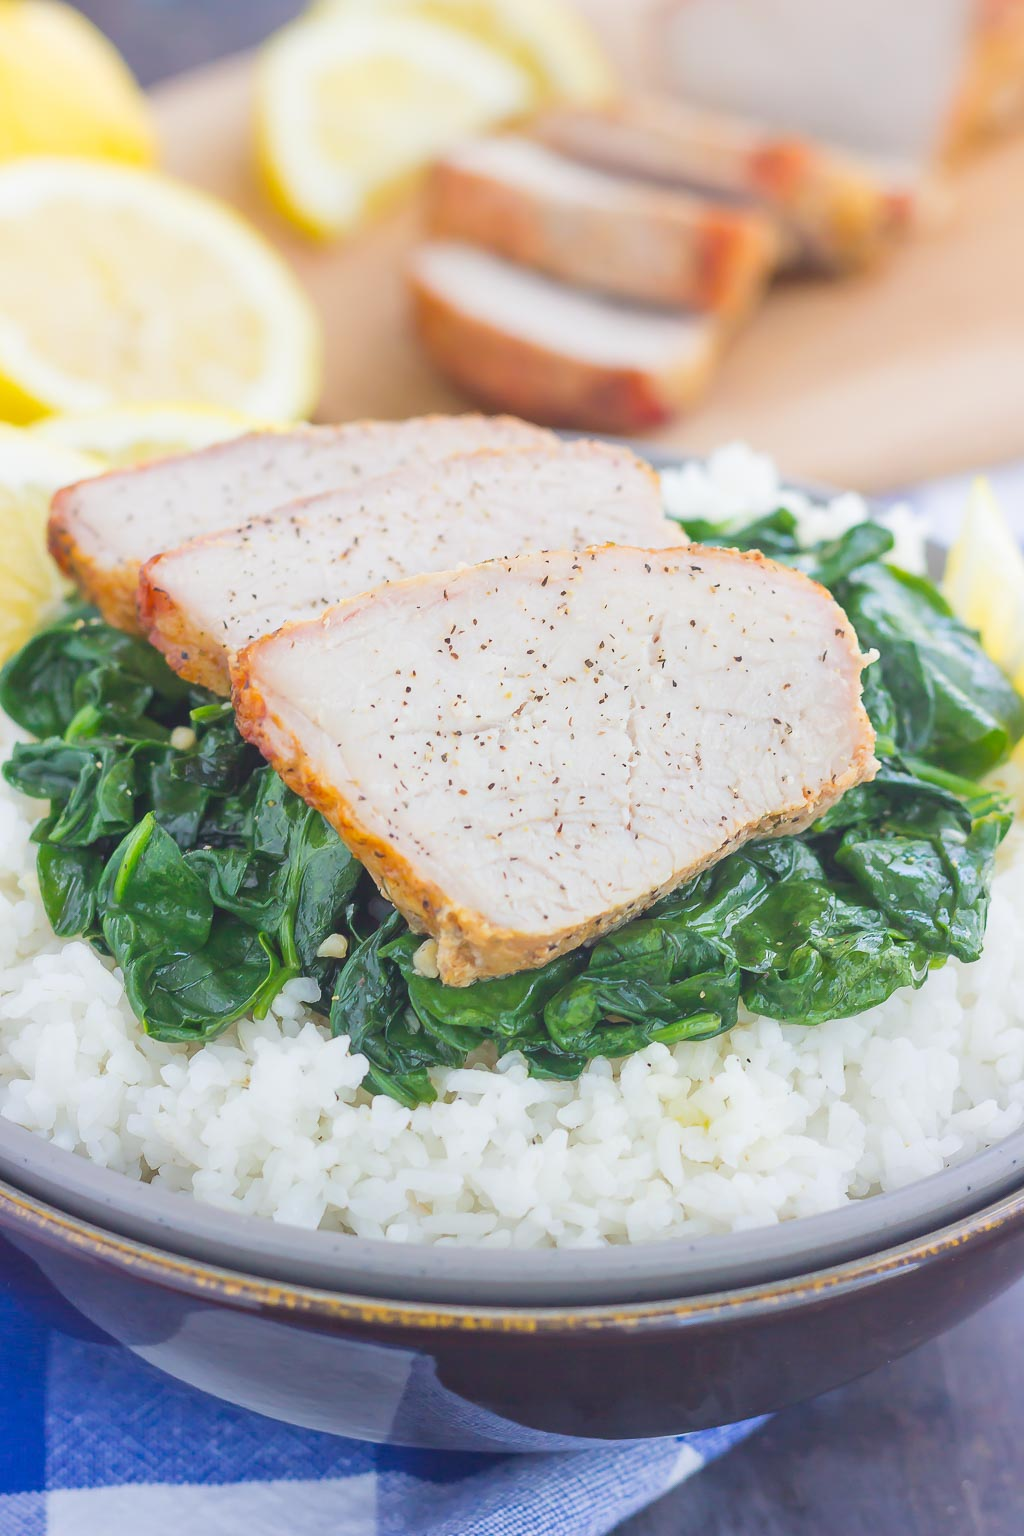 This Grilled Garlic Herb Pork Bowl is an easy meal that's loaded with flavor. Marinated pork loin filet is prepared on the grill and then tossed with some white rice and sautéed spinach. Simple to make a perfect for busy weeknights, this hearty dinner is sure to be a favorite all year long!